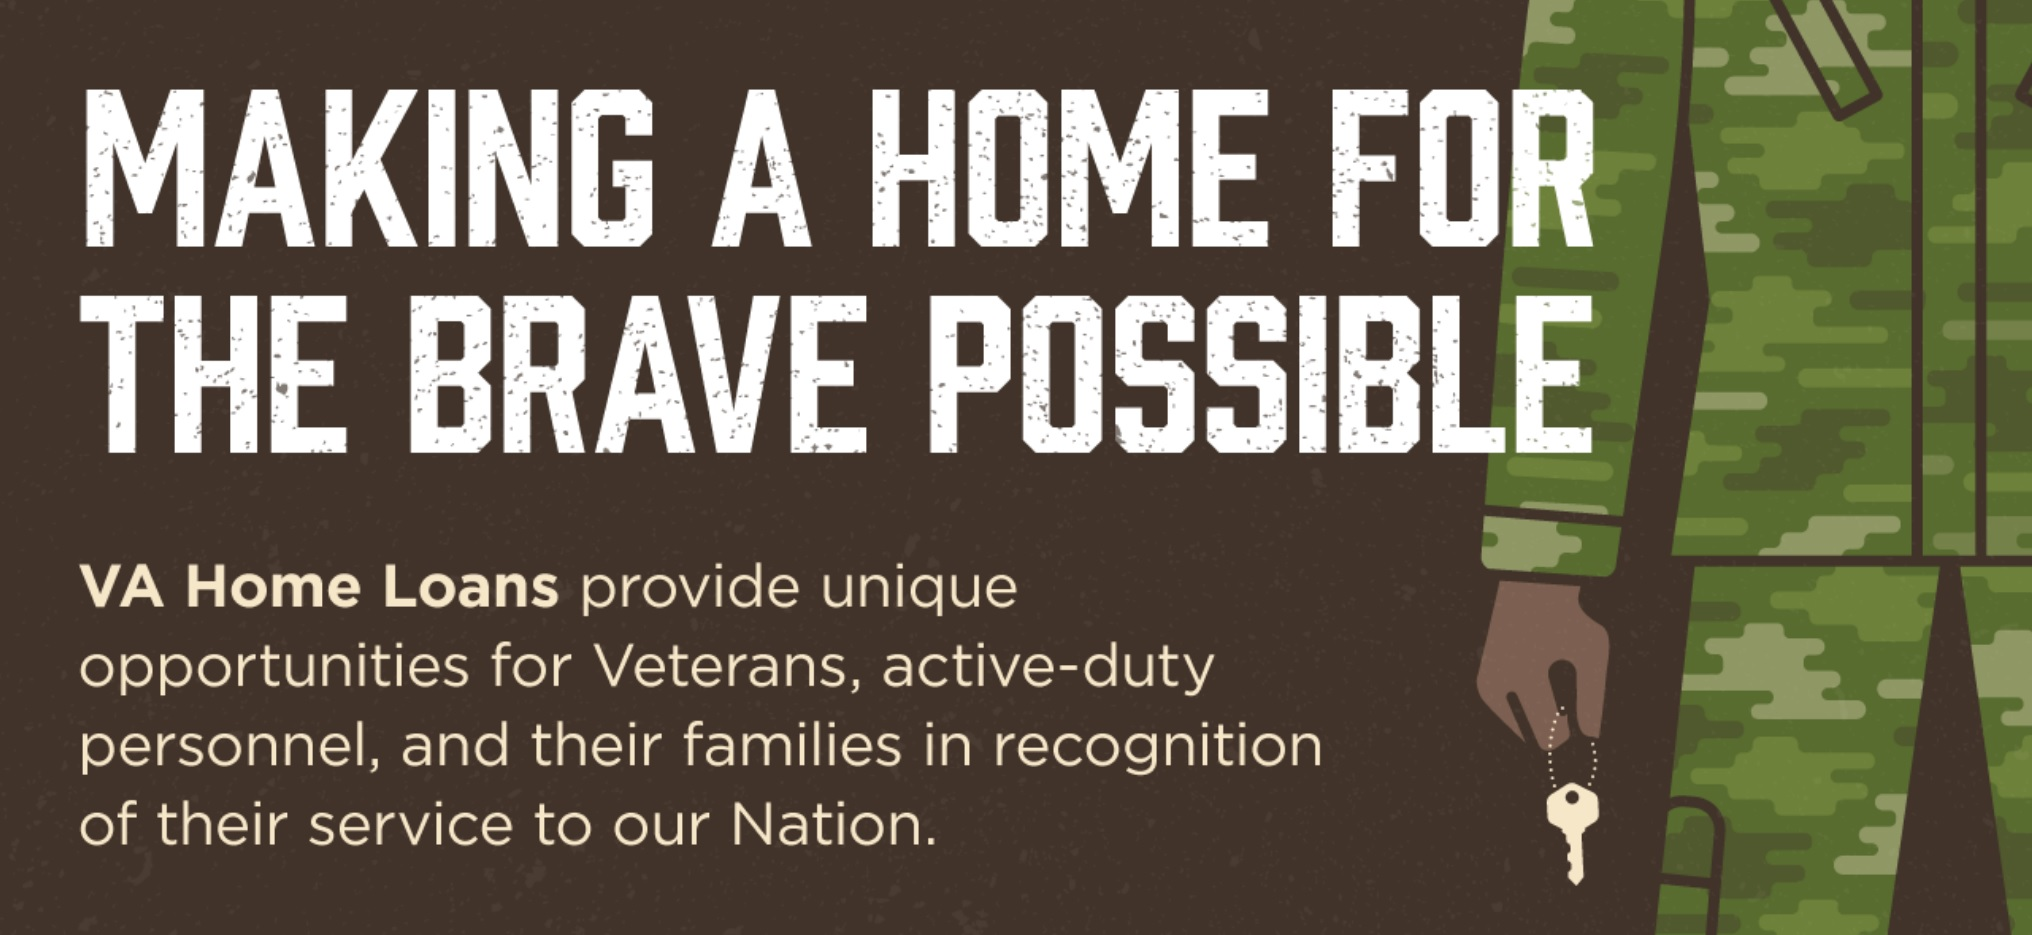 How VA Home Loans Make Home Ownership Possible For Veterans